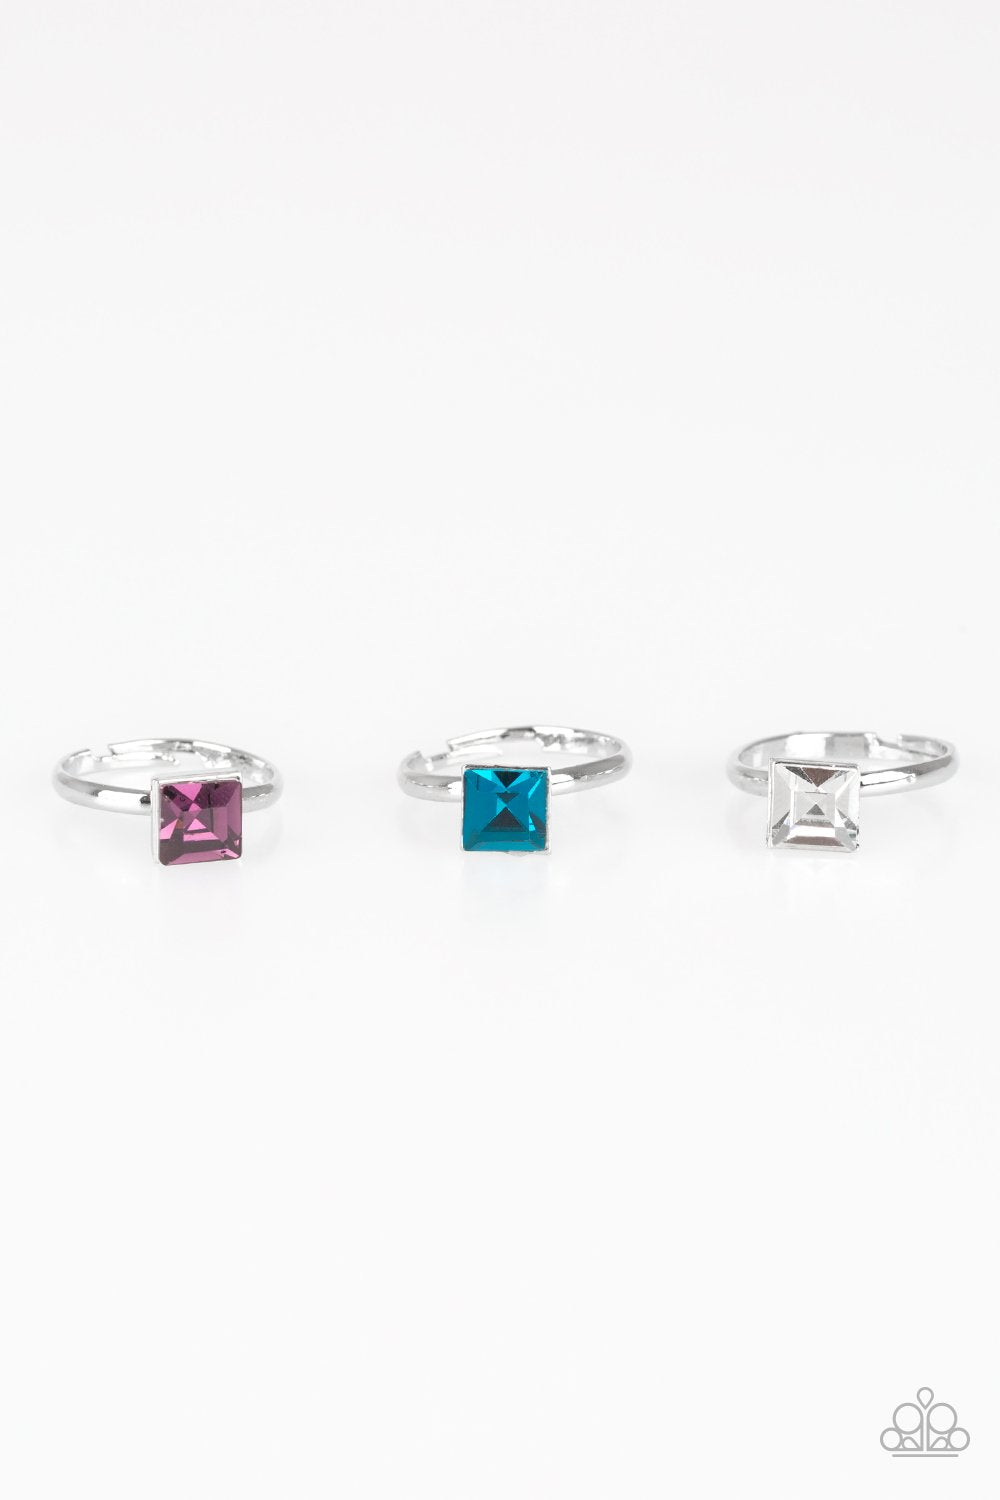 Paparazzi Starlet Shimmer Square Gem Ring - Bling It On Online